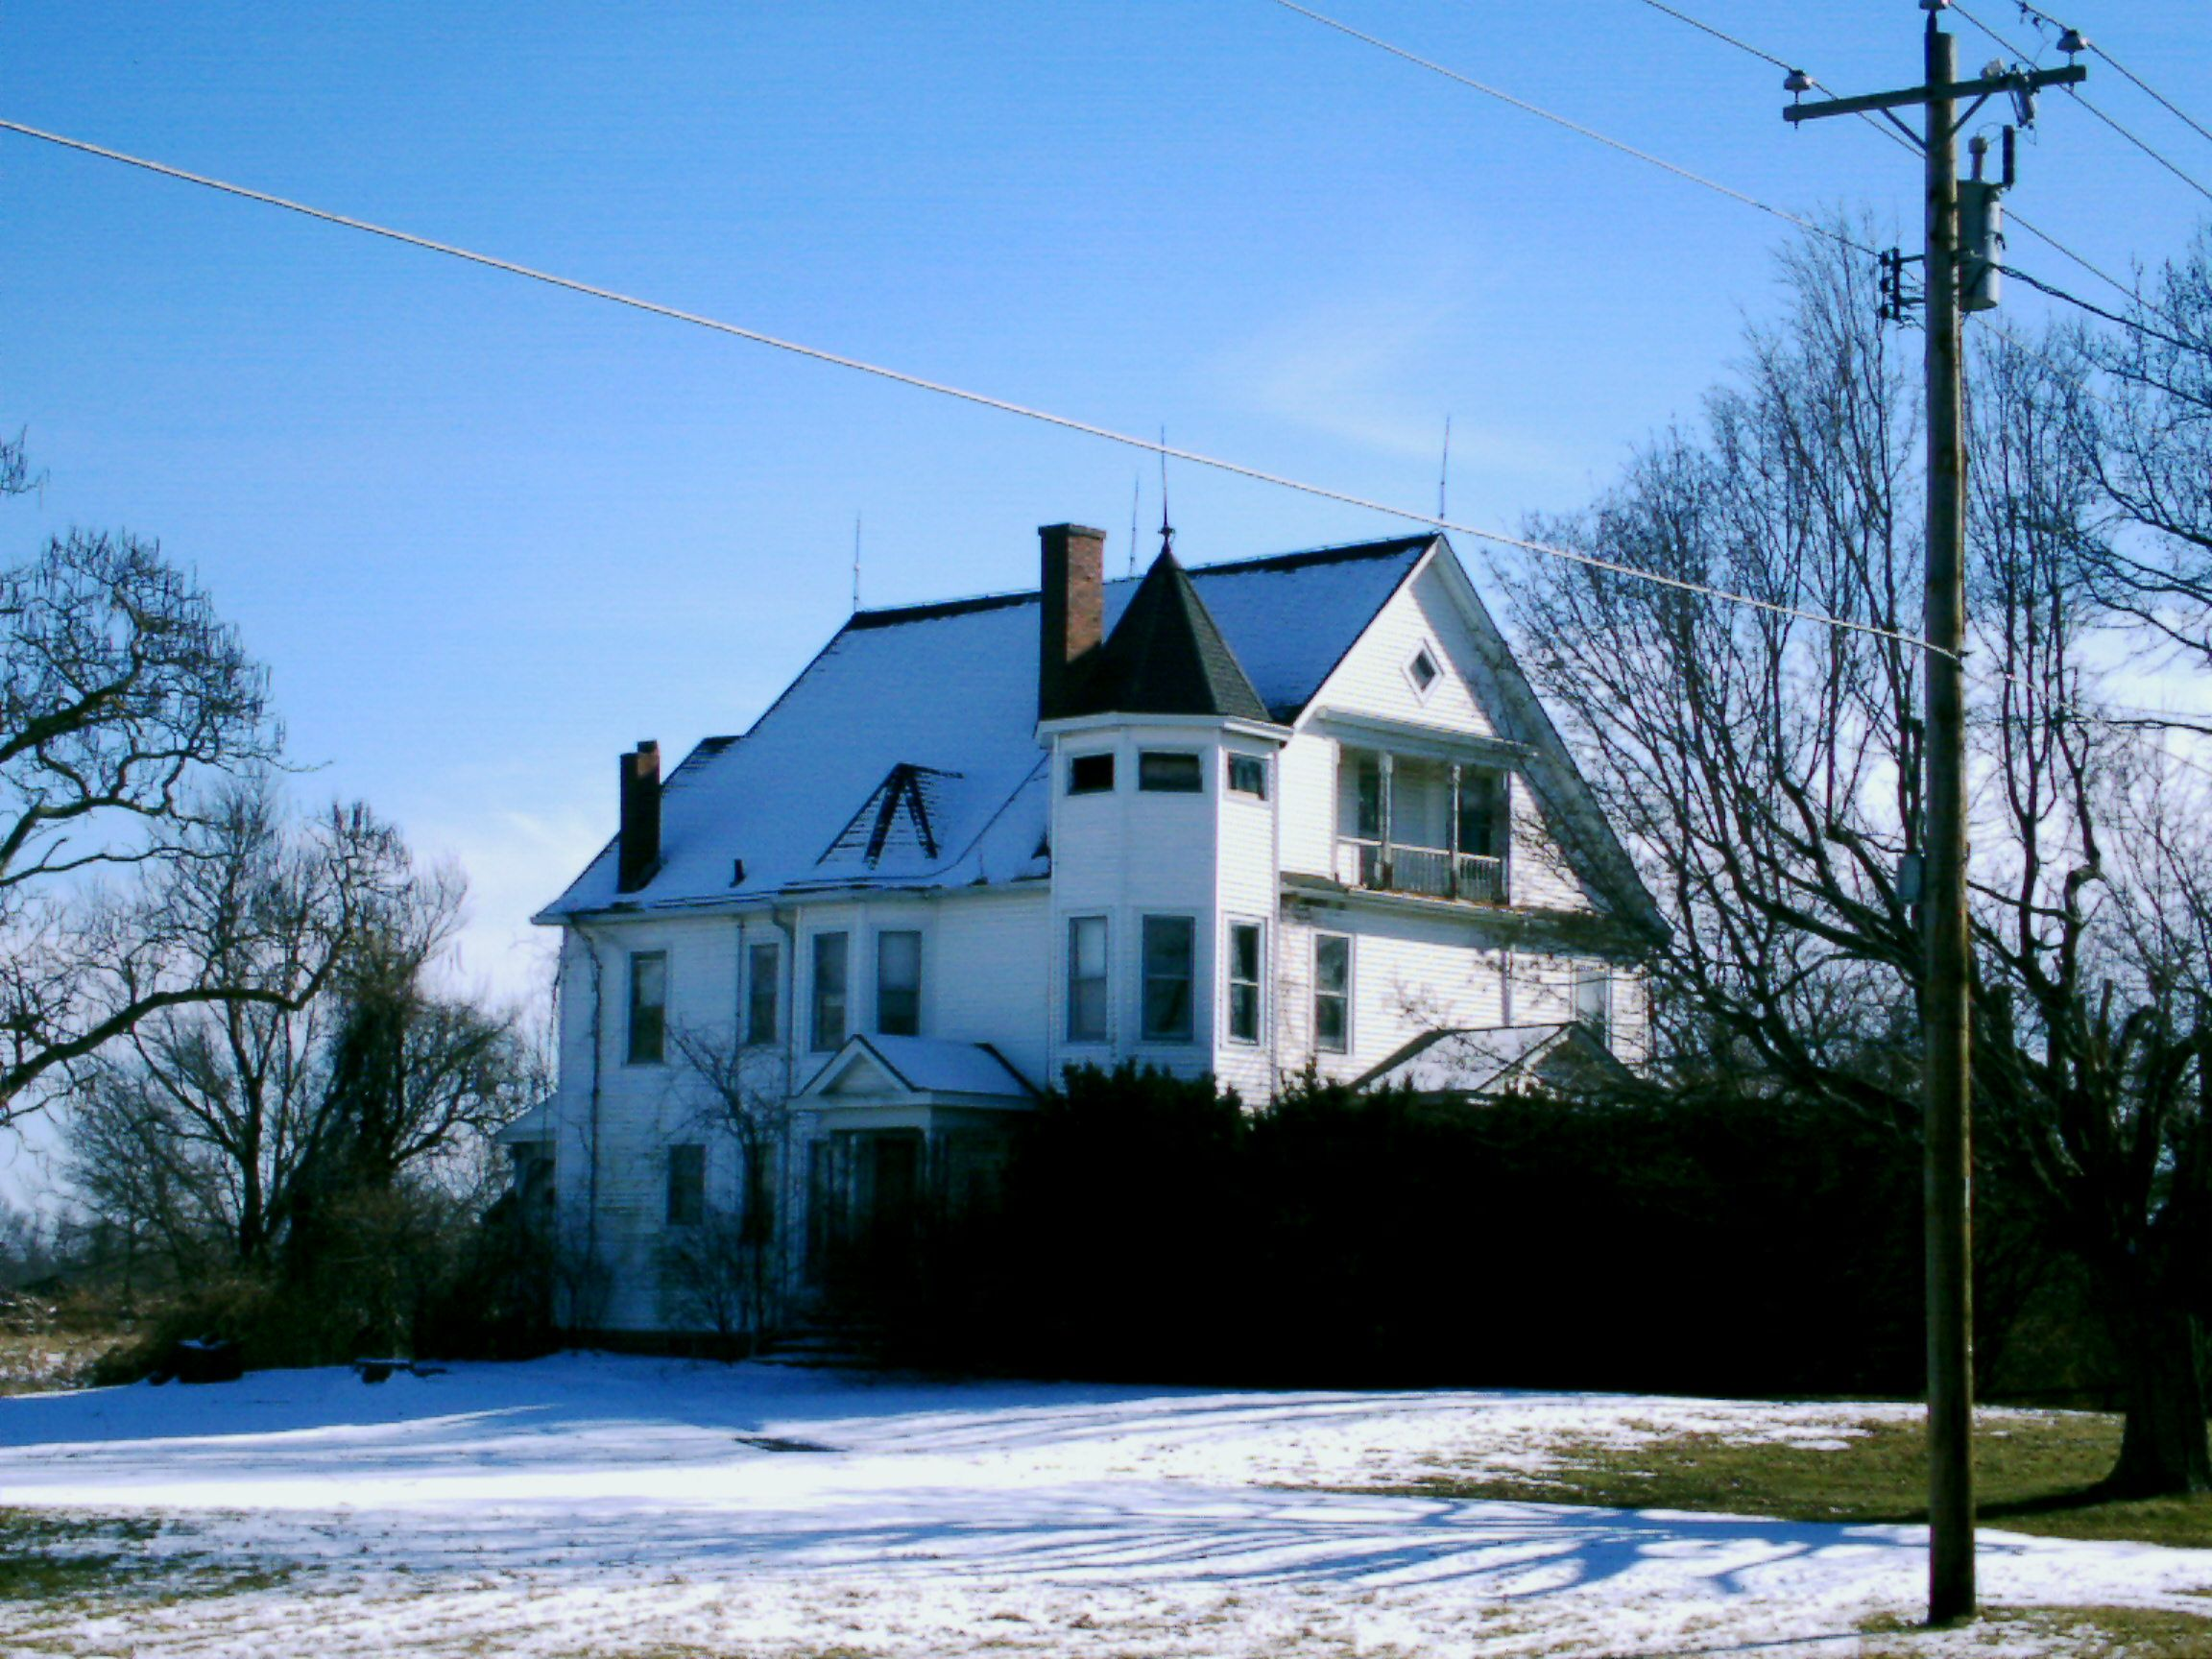 Mt. Orab, OH (Brown County) - A neat old house on U.S. 68 south of ...